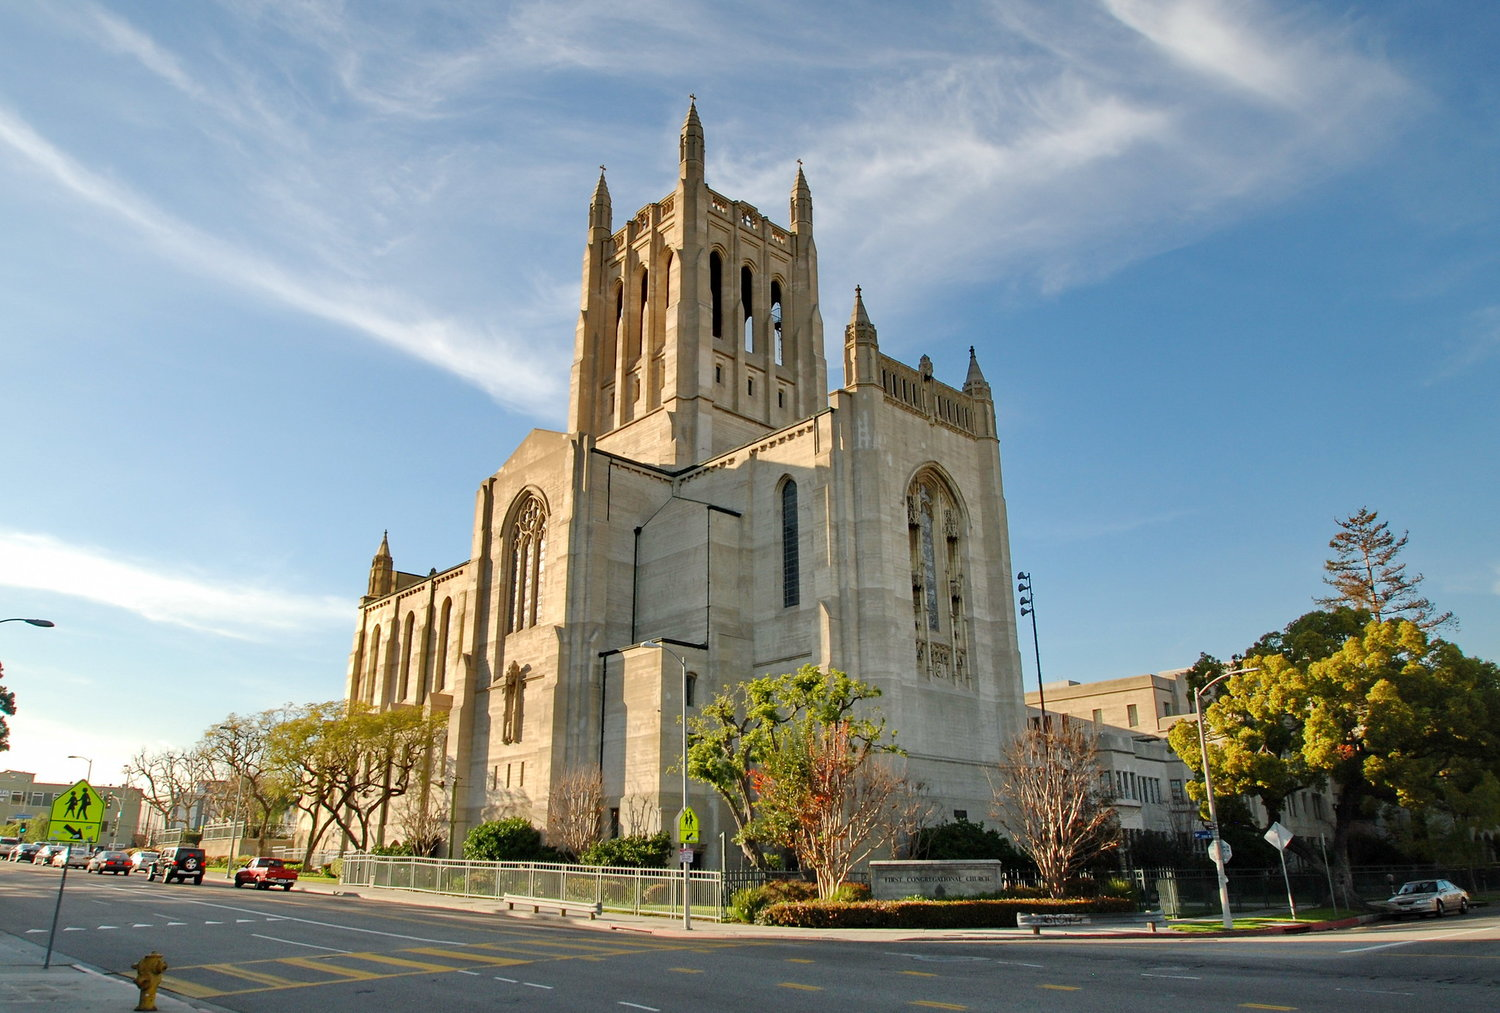 Photo taken from www.fccla.org of  The First Congregational Church of Los Angeles